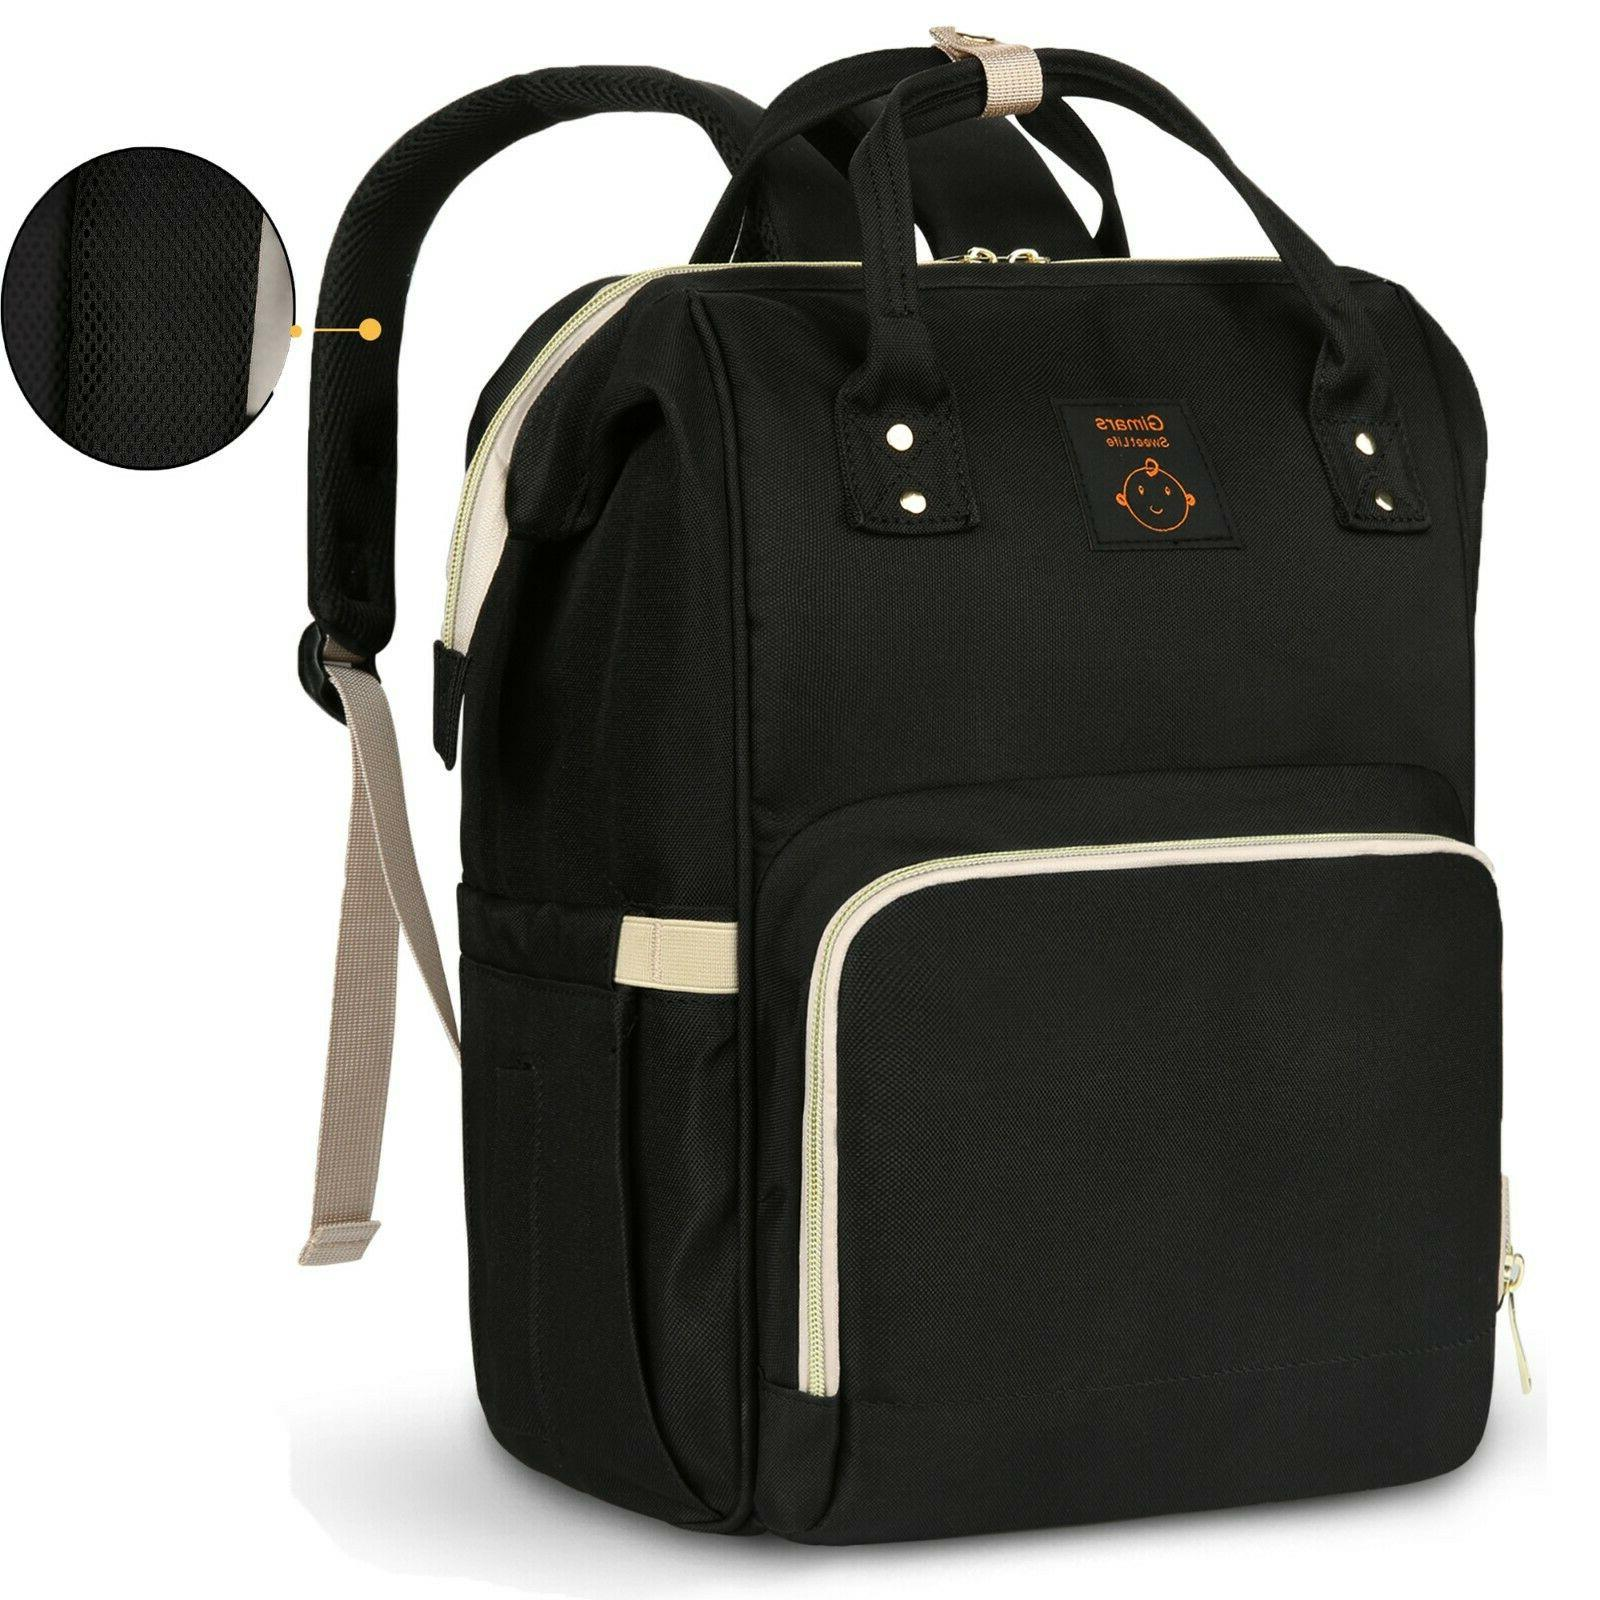 Diaper Bag - Multi-Function Waterproof Travel